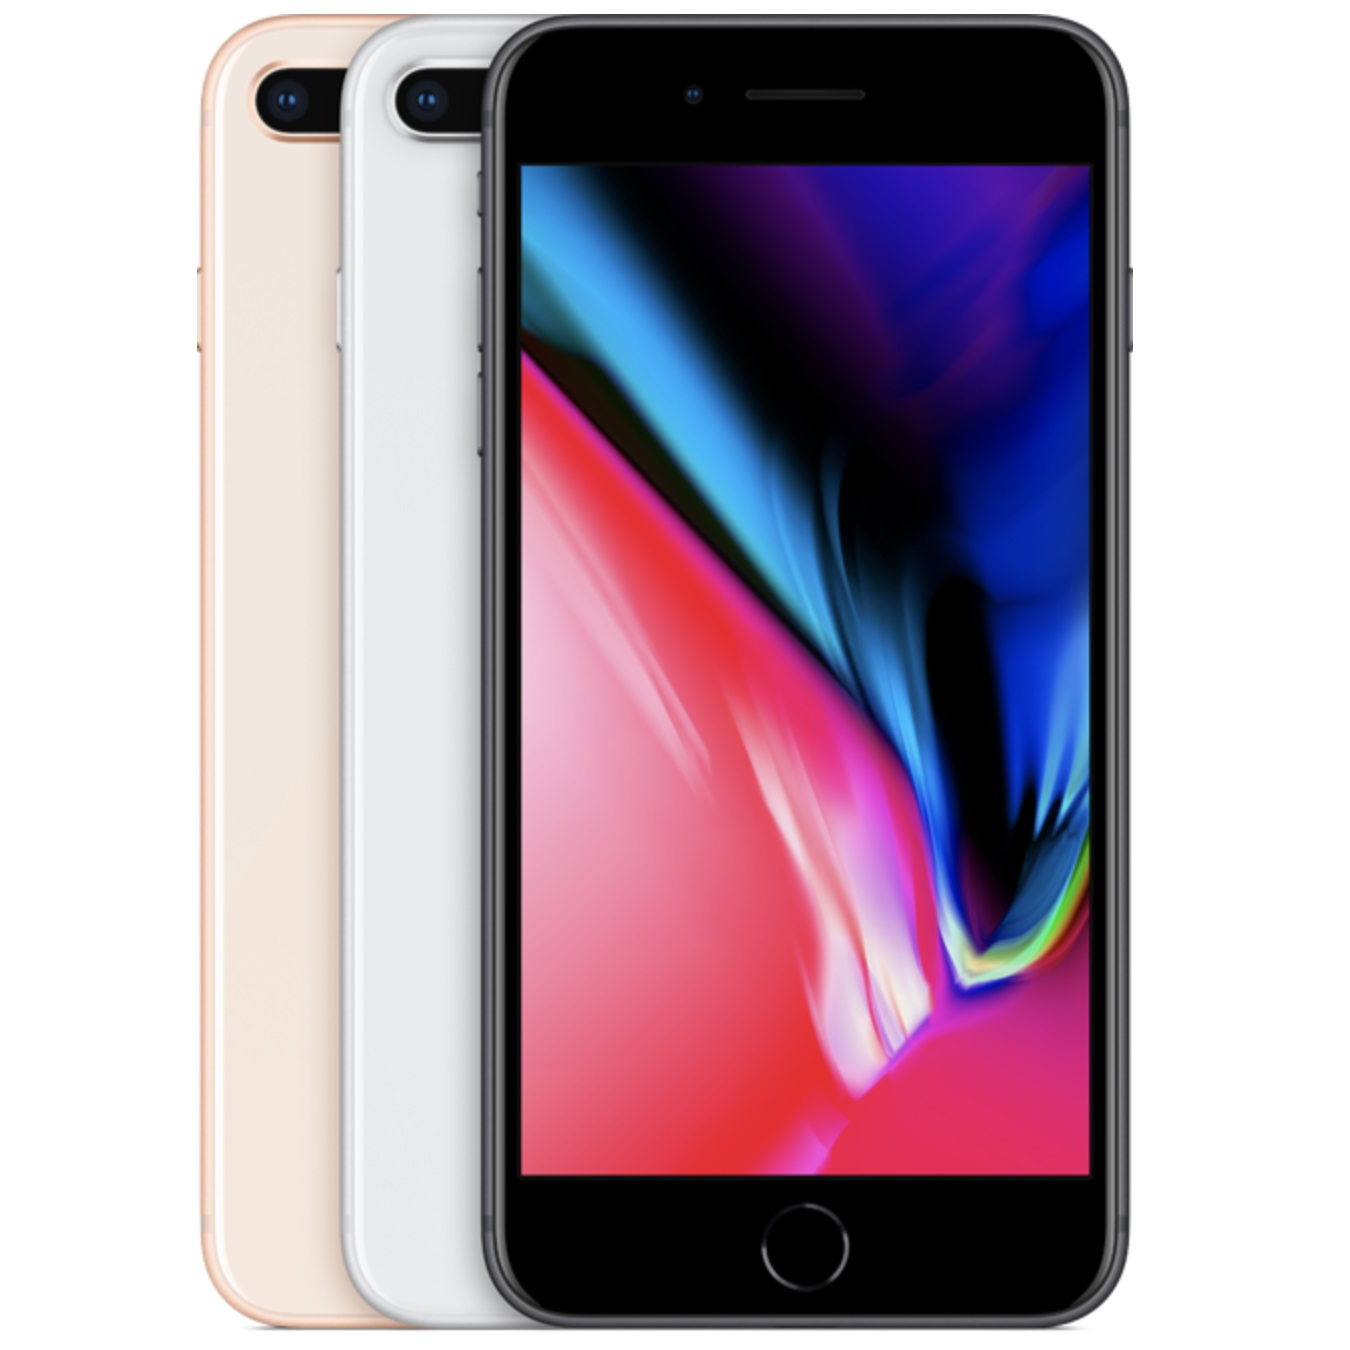 iphone 8 Plus ortung ungenau